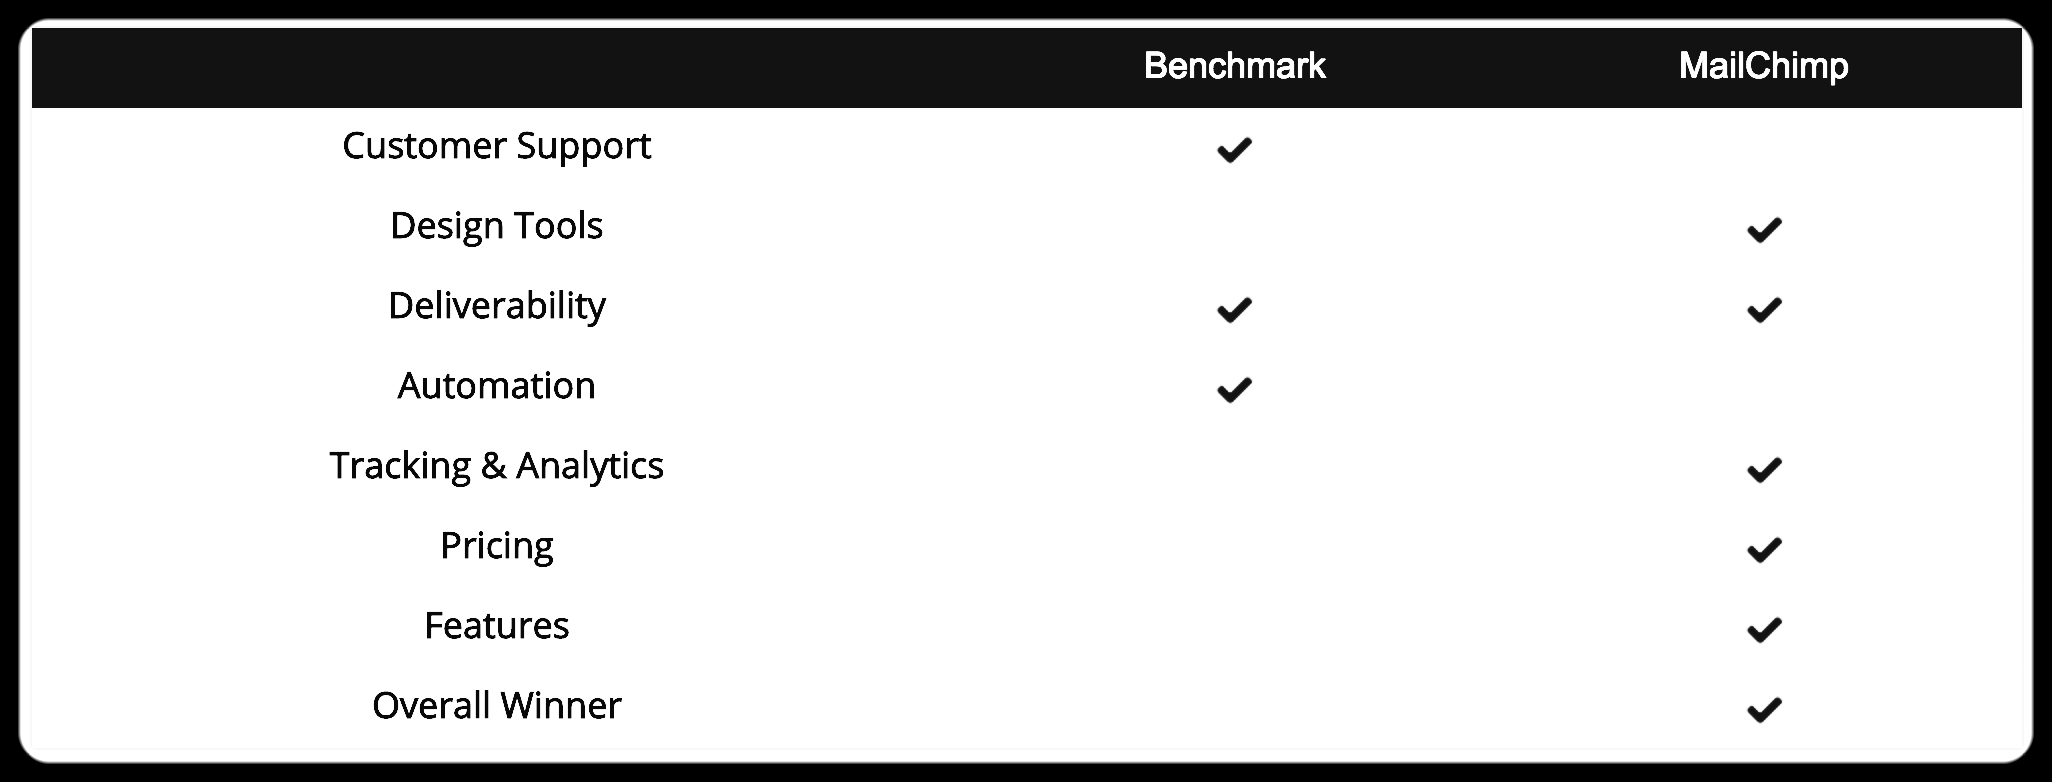 Comparison between Benchmark and Mailchimp